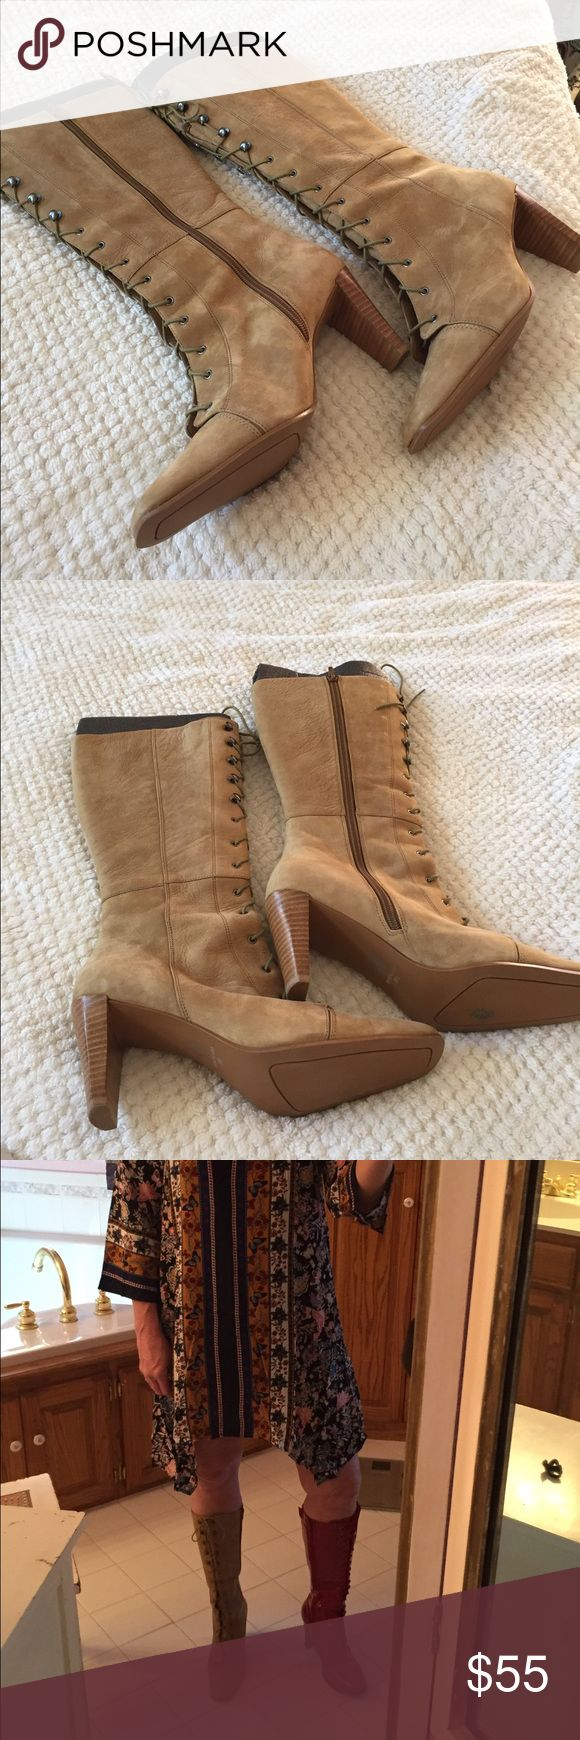 NWOT VS brown suede boots NWOT VS brown suede boots.  Tie in the front.  Zips up the side.  Dress and red boots also for sale. Moda International Shoes Heeled Boots